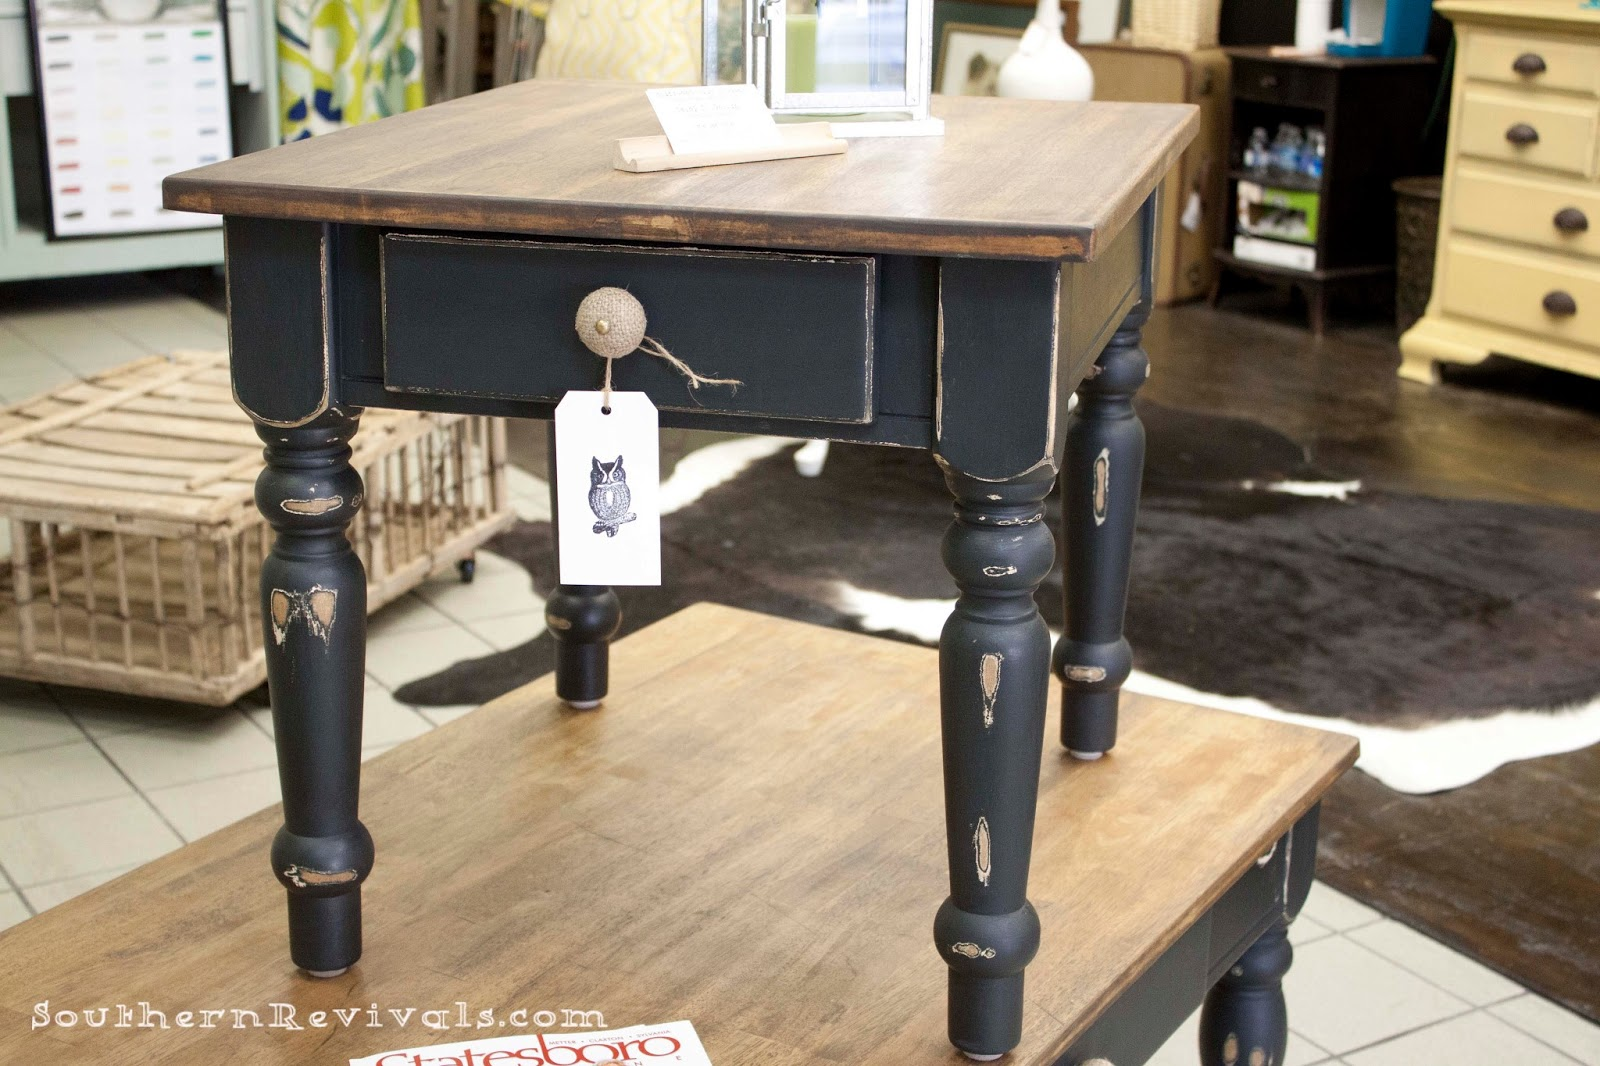 Pottery Barn Inspired Coffee Table U0026 End Table Makeover   Southern Revivals